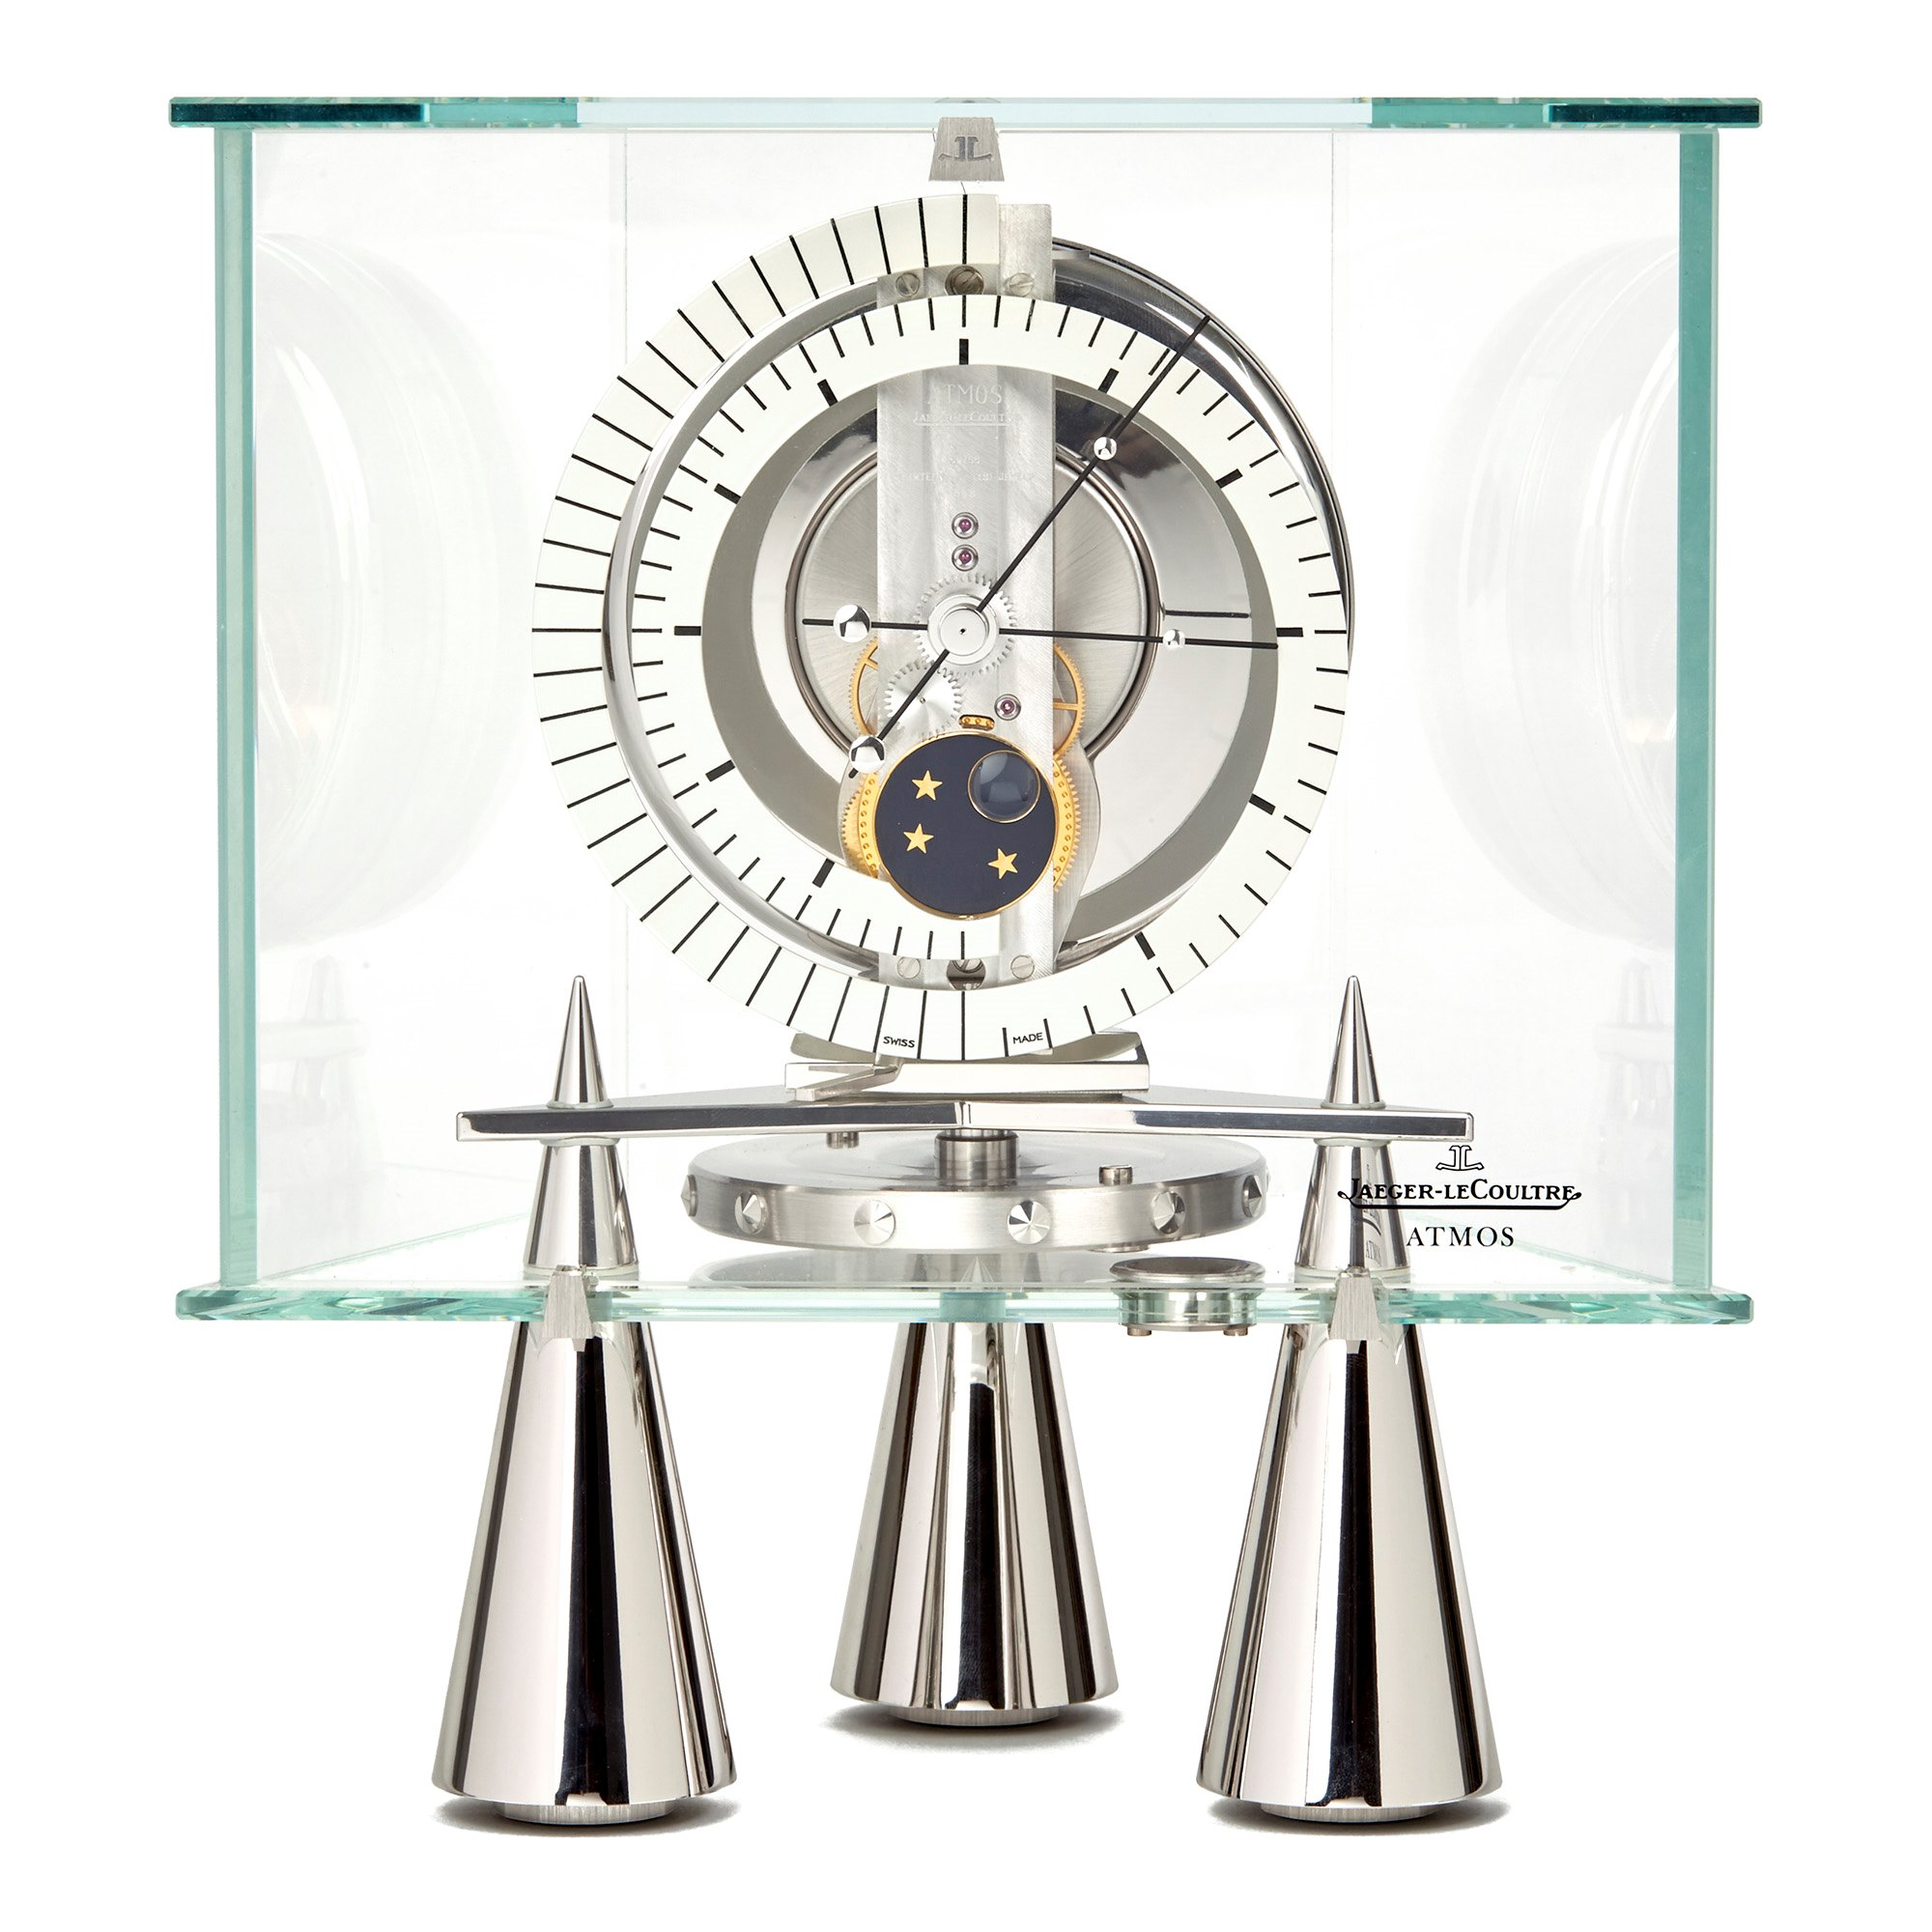 Jaeger-LeCoultre ATMOS Clock Glass 3000